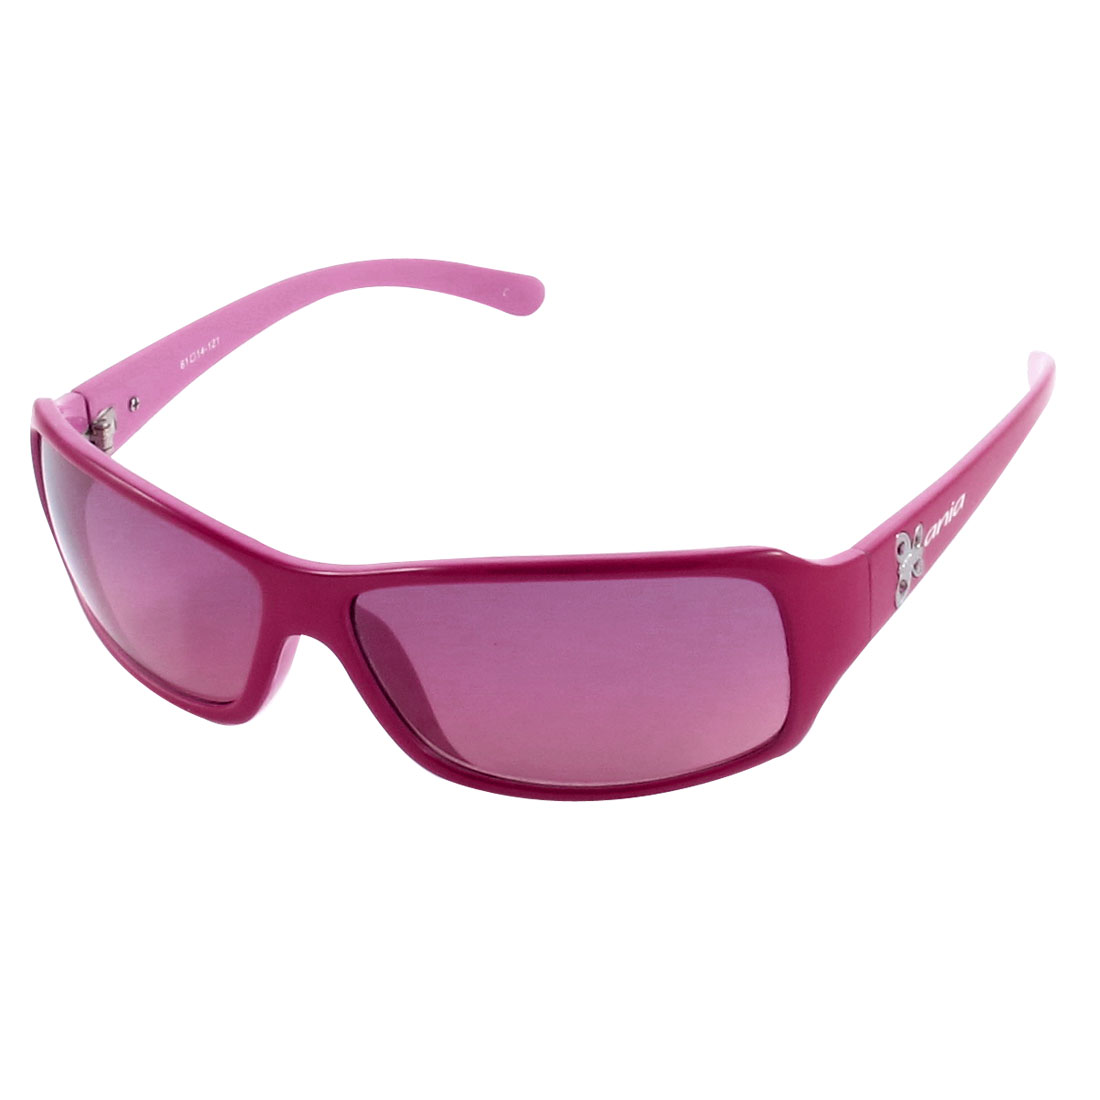 Stylish Fuchsia Frame Plastic Arms Ladies' Sunglasses Eyewear